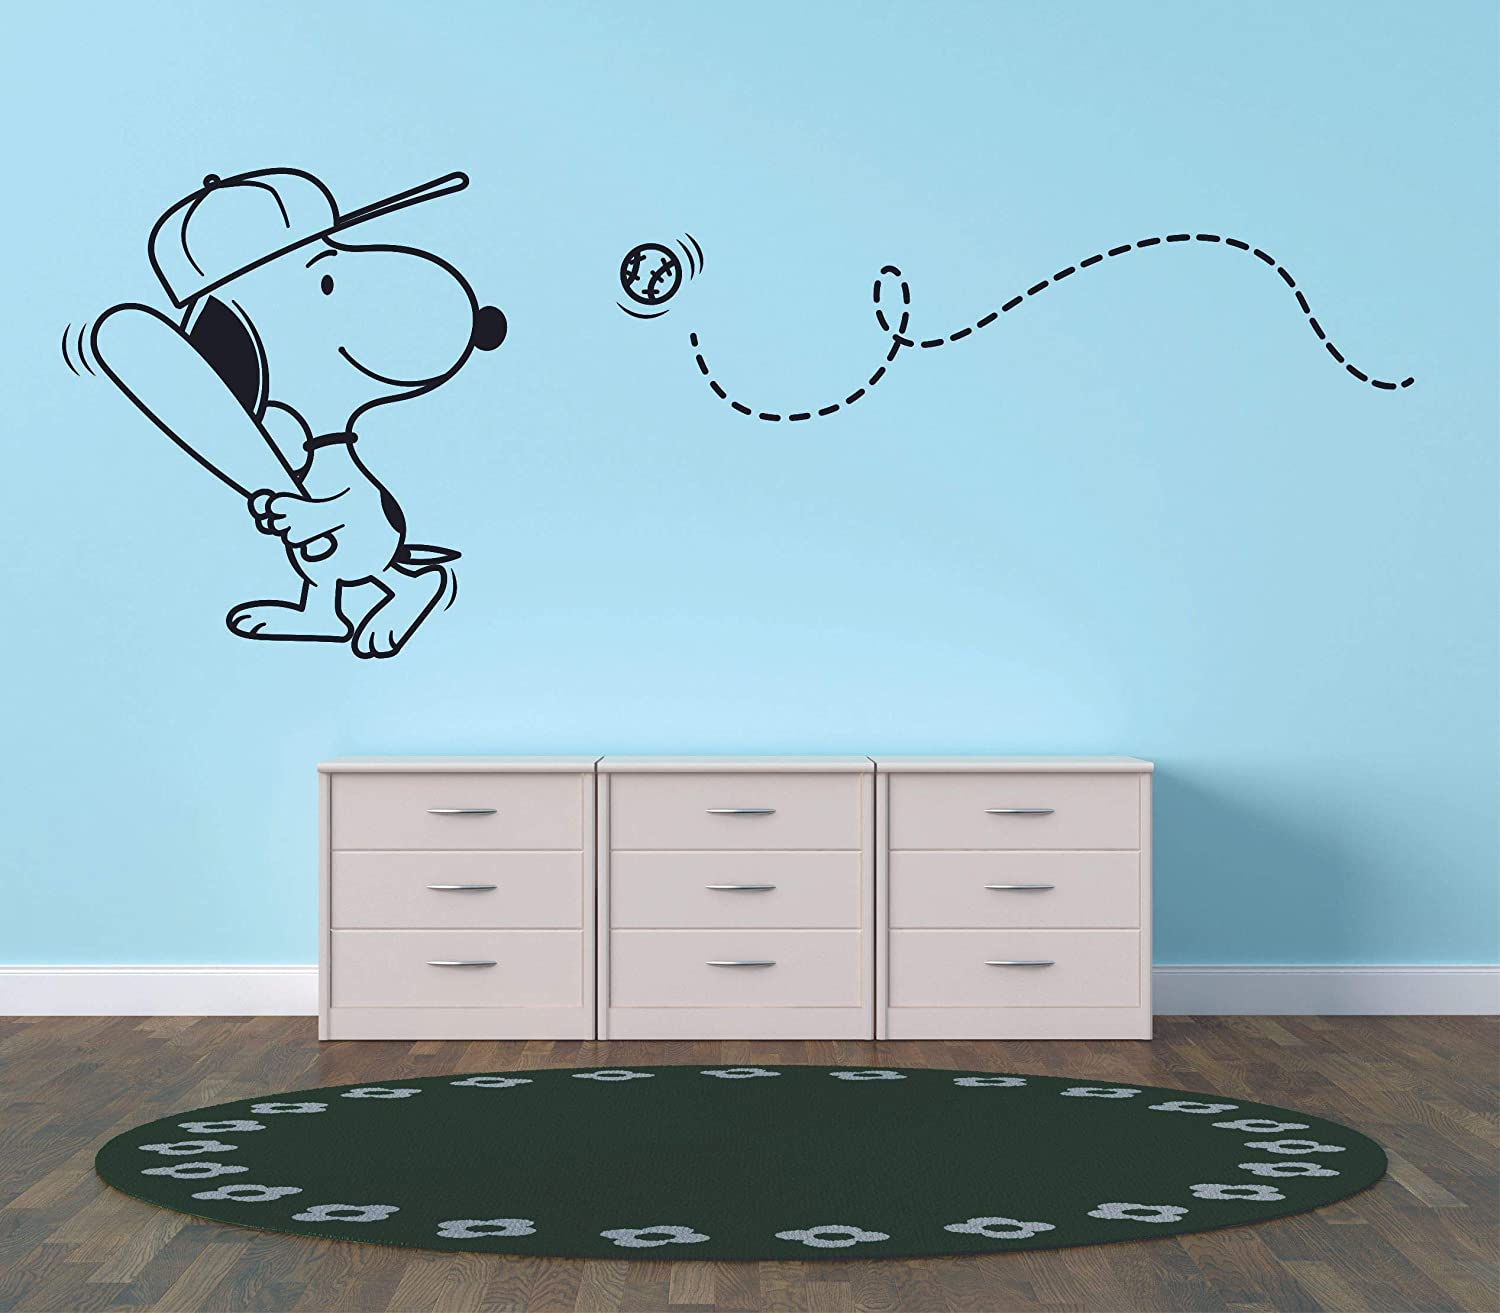 Snoopy Wall Decals For Kids Bedroom / Snoopy Dog Boy Room Decor / Vinyl Art Stickers Decal Childrens Rooms / The Peanuts Movie Cartoon Character Baseball Sports Fun Dogs Decoration- Size (27x30 inch)